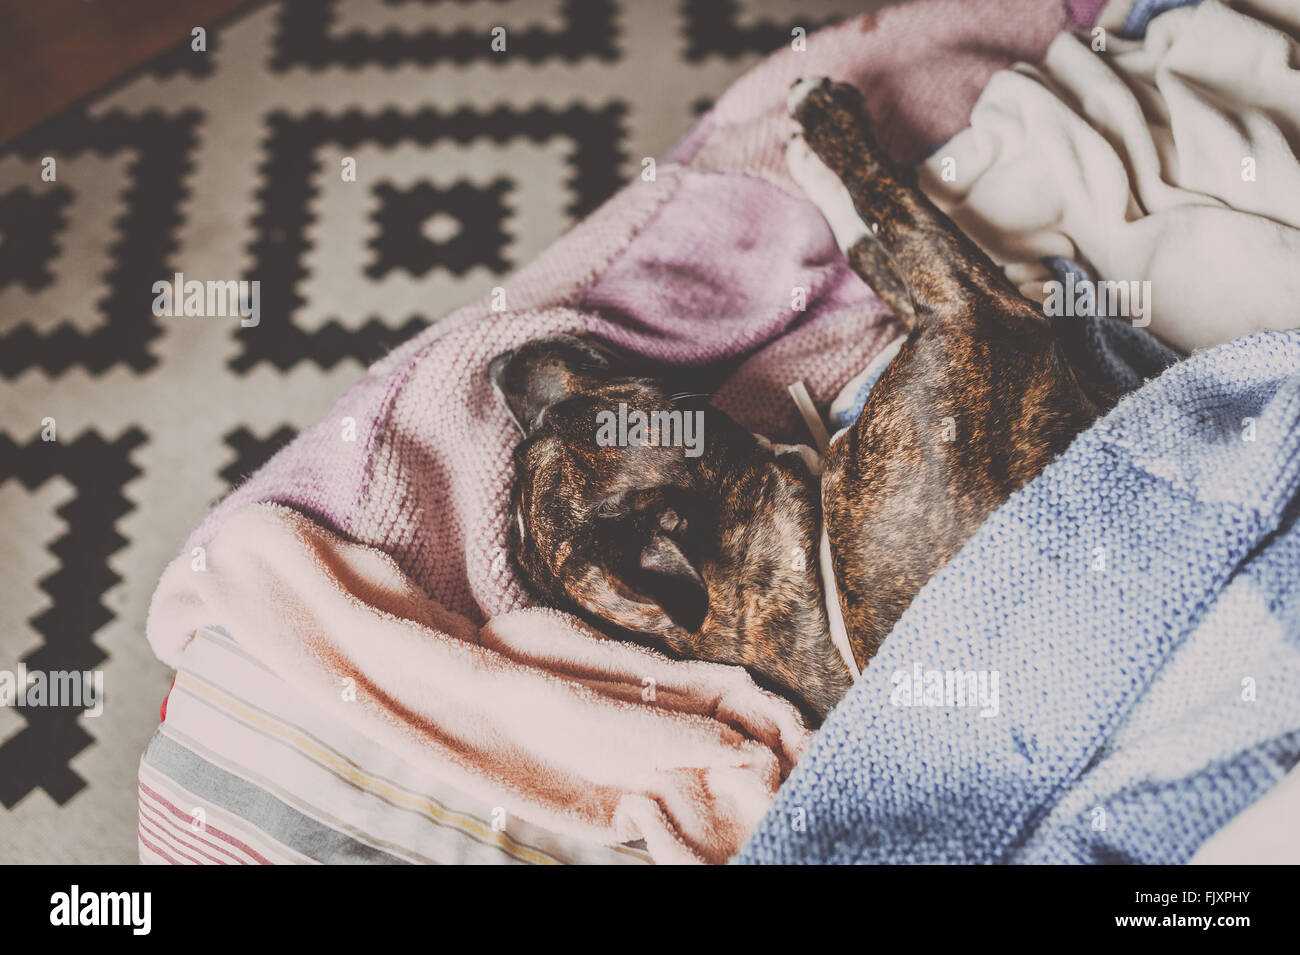 High Angle View Of Pit Bull Dog Sleeping On Bed At Home - Stock Image